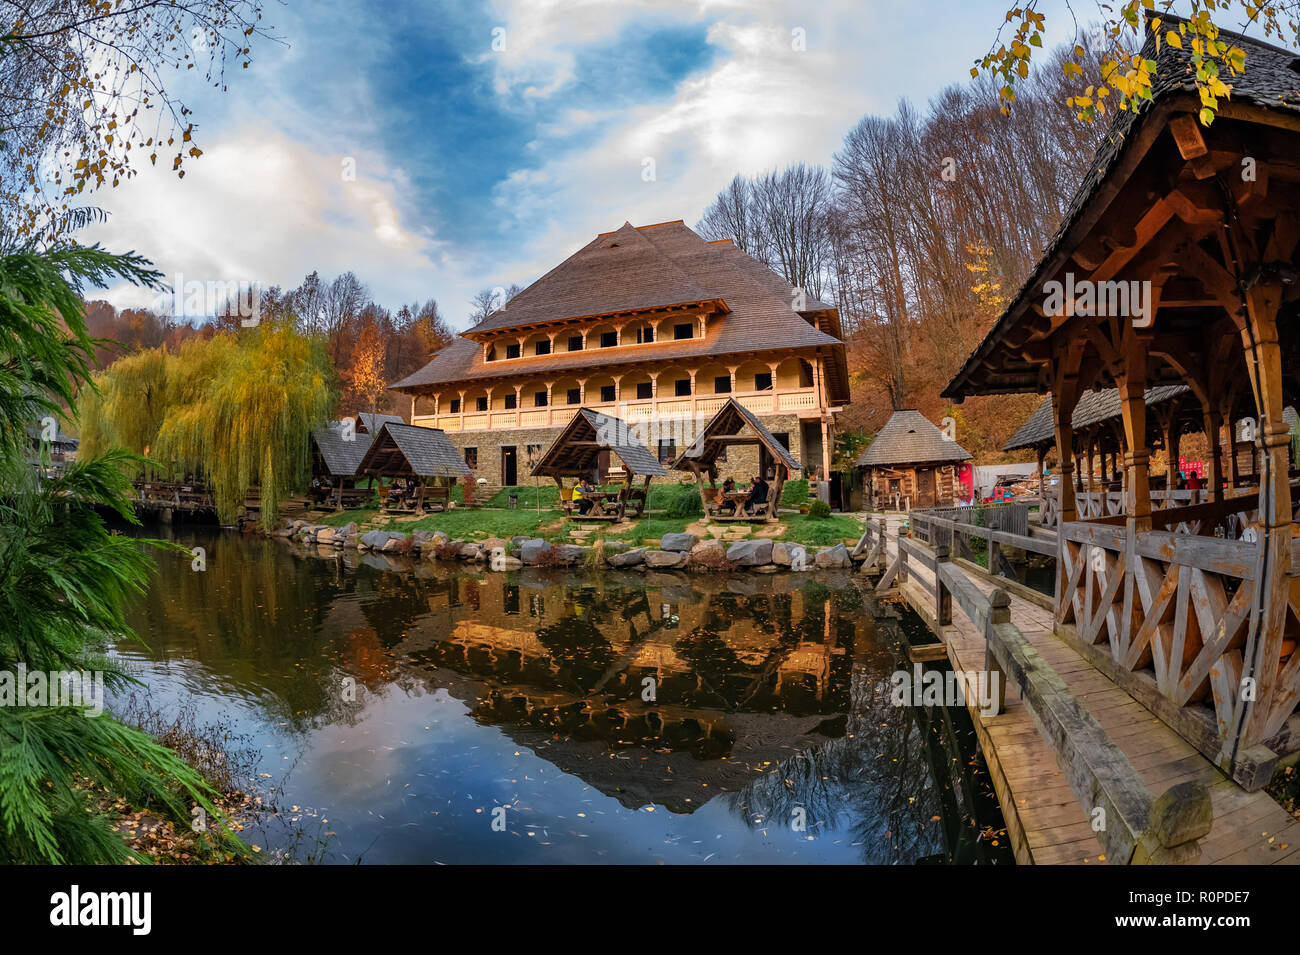 Trout farm Mara, in Sighetu Marmatiei, Maramures region - Romania Stock Photo